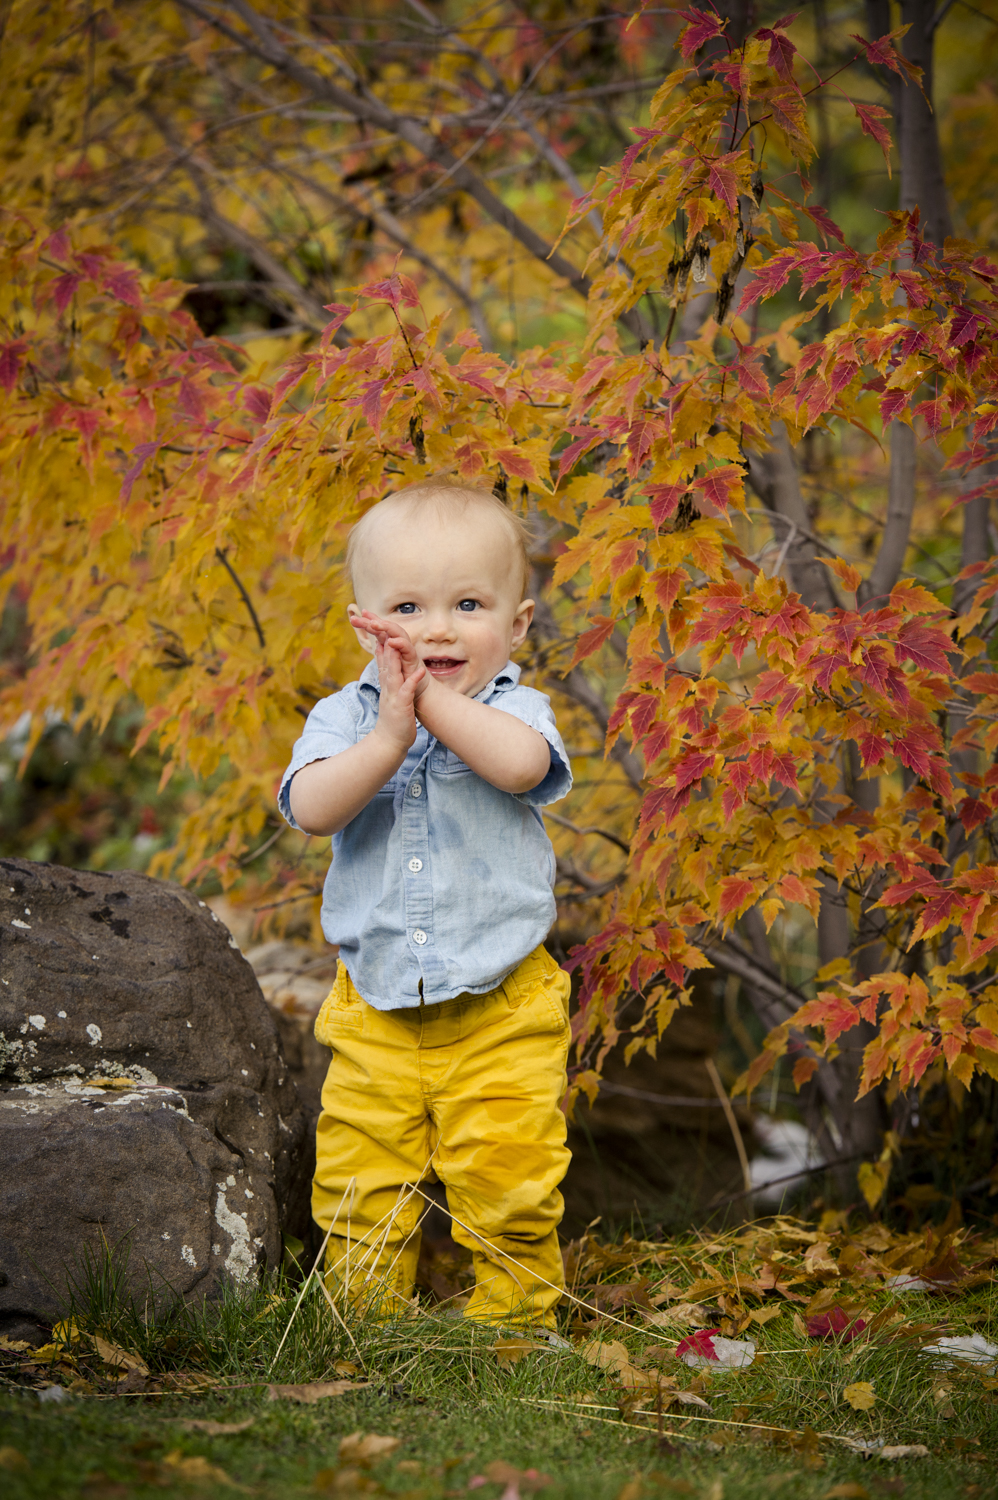 fall_lifestyle_family_leaves_candid_playing-007.jpg